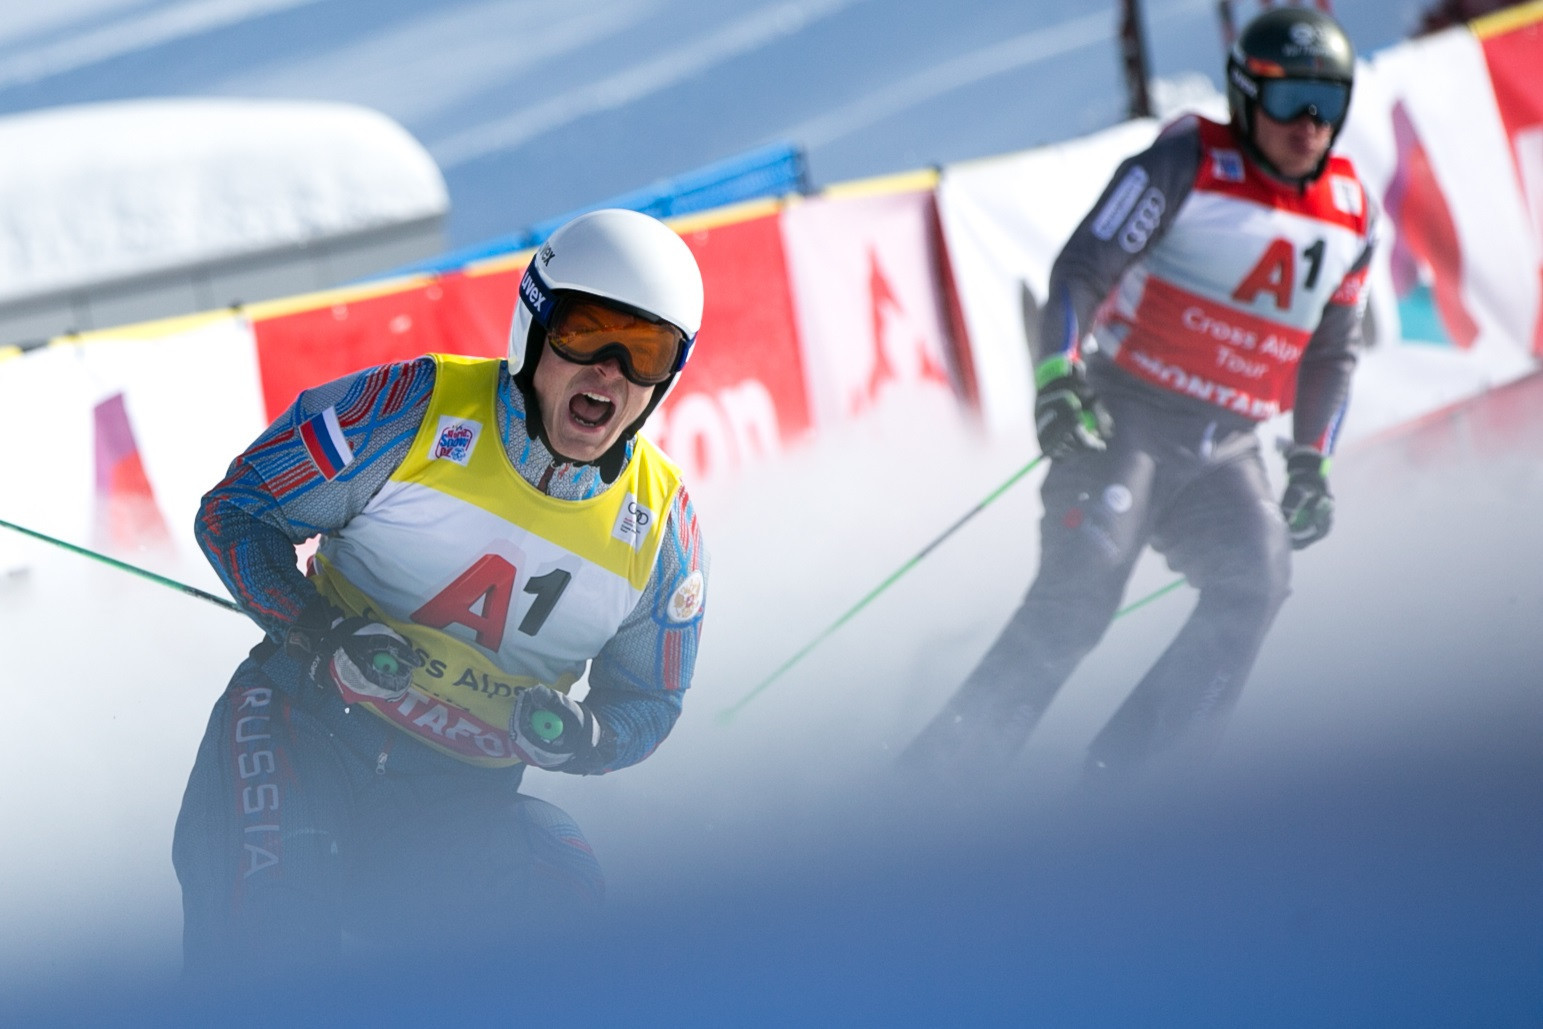 Ridzik and Smith taste victory at FIS Ski Cross World Cup in Montafon